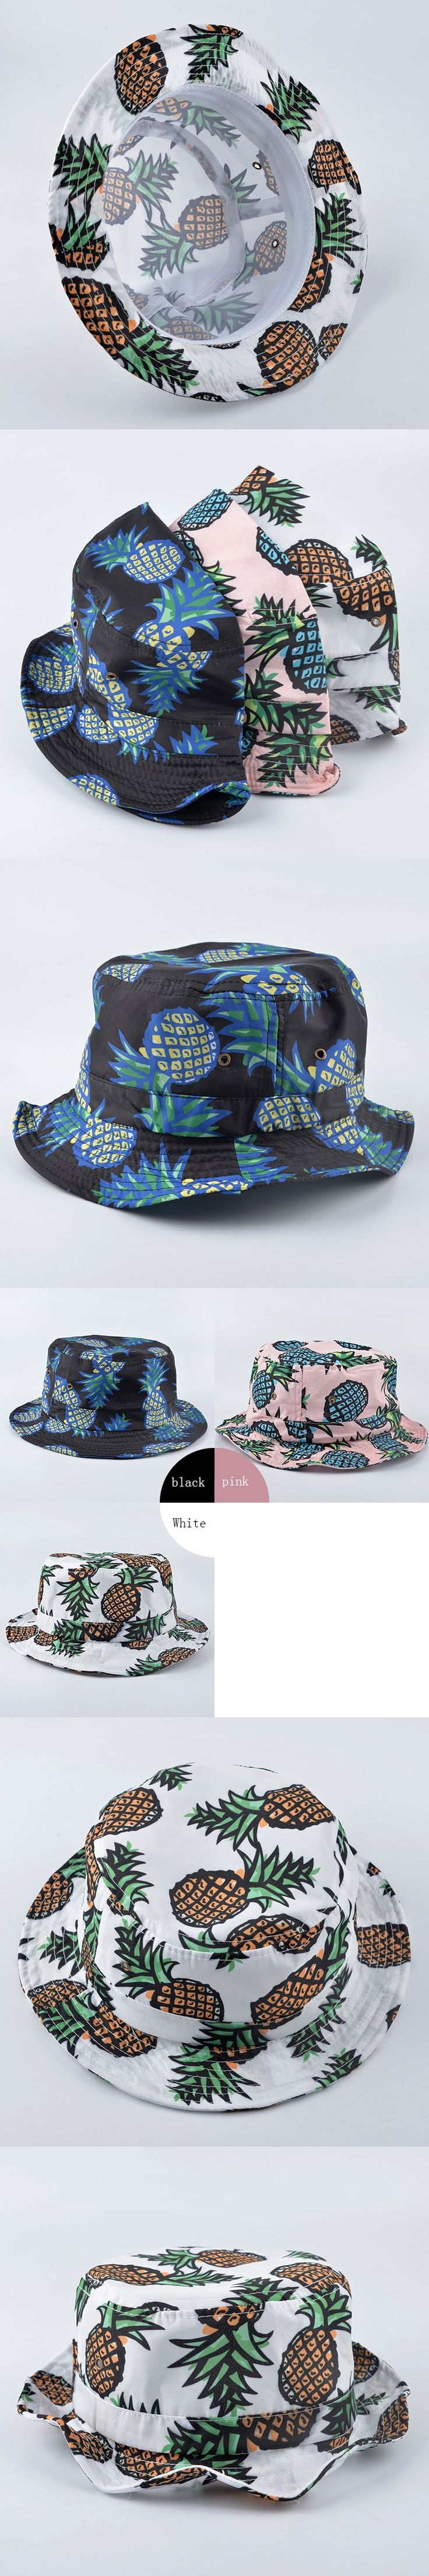 2016 ultrathin Bucket Hats pineapple Fruit pattern sun hats For Women Girls Men Fashion Lovely Summer Casual Cotton Fishing Hat